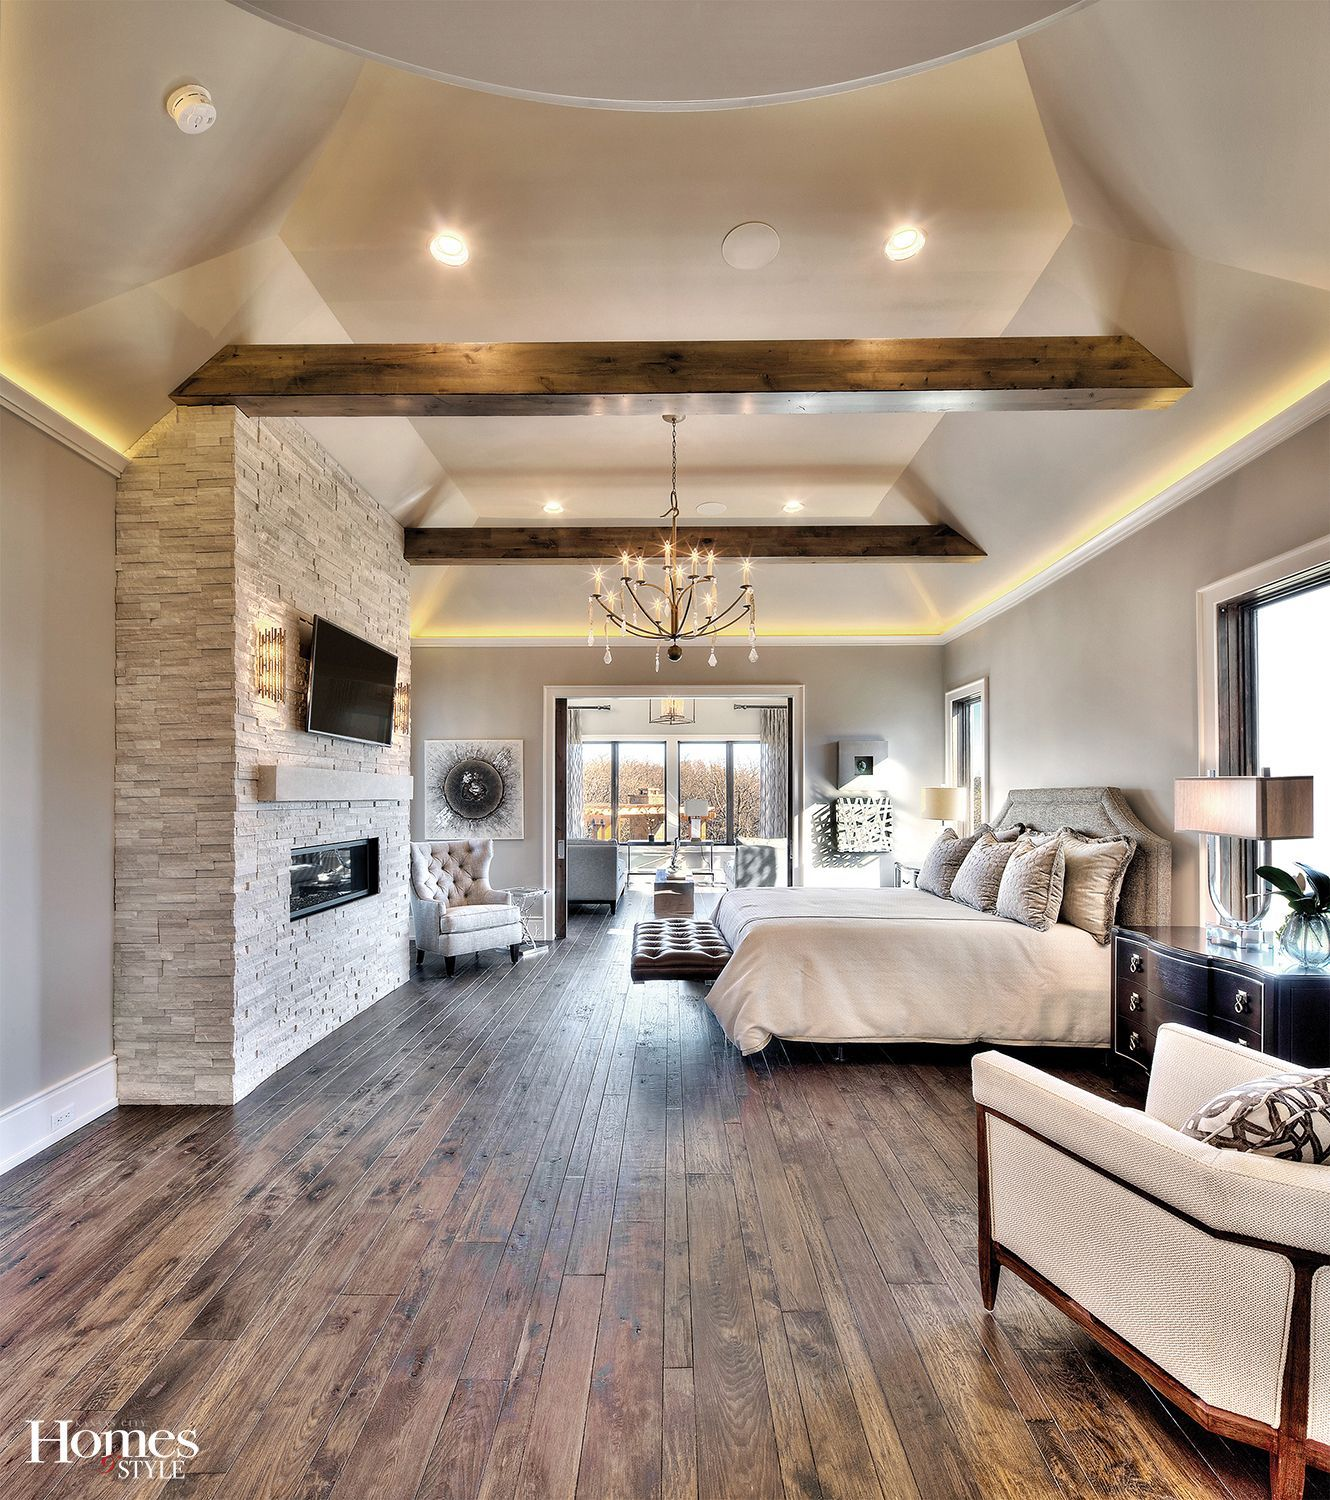 So Elegant Love A Sitting Area In A Master Bedroom By: 15+ Refreshing Master Bedroom Design Ideas For Renovation